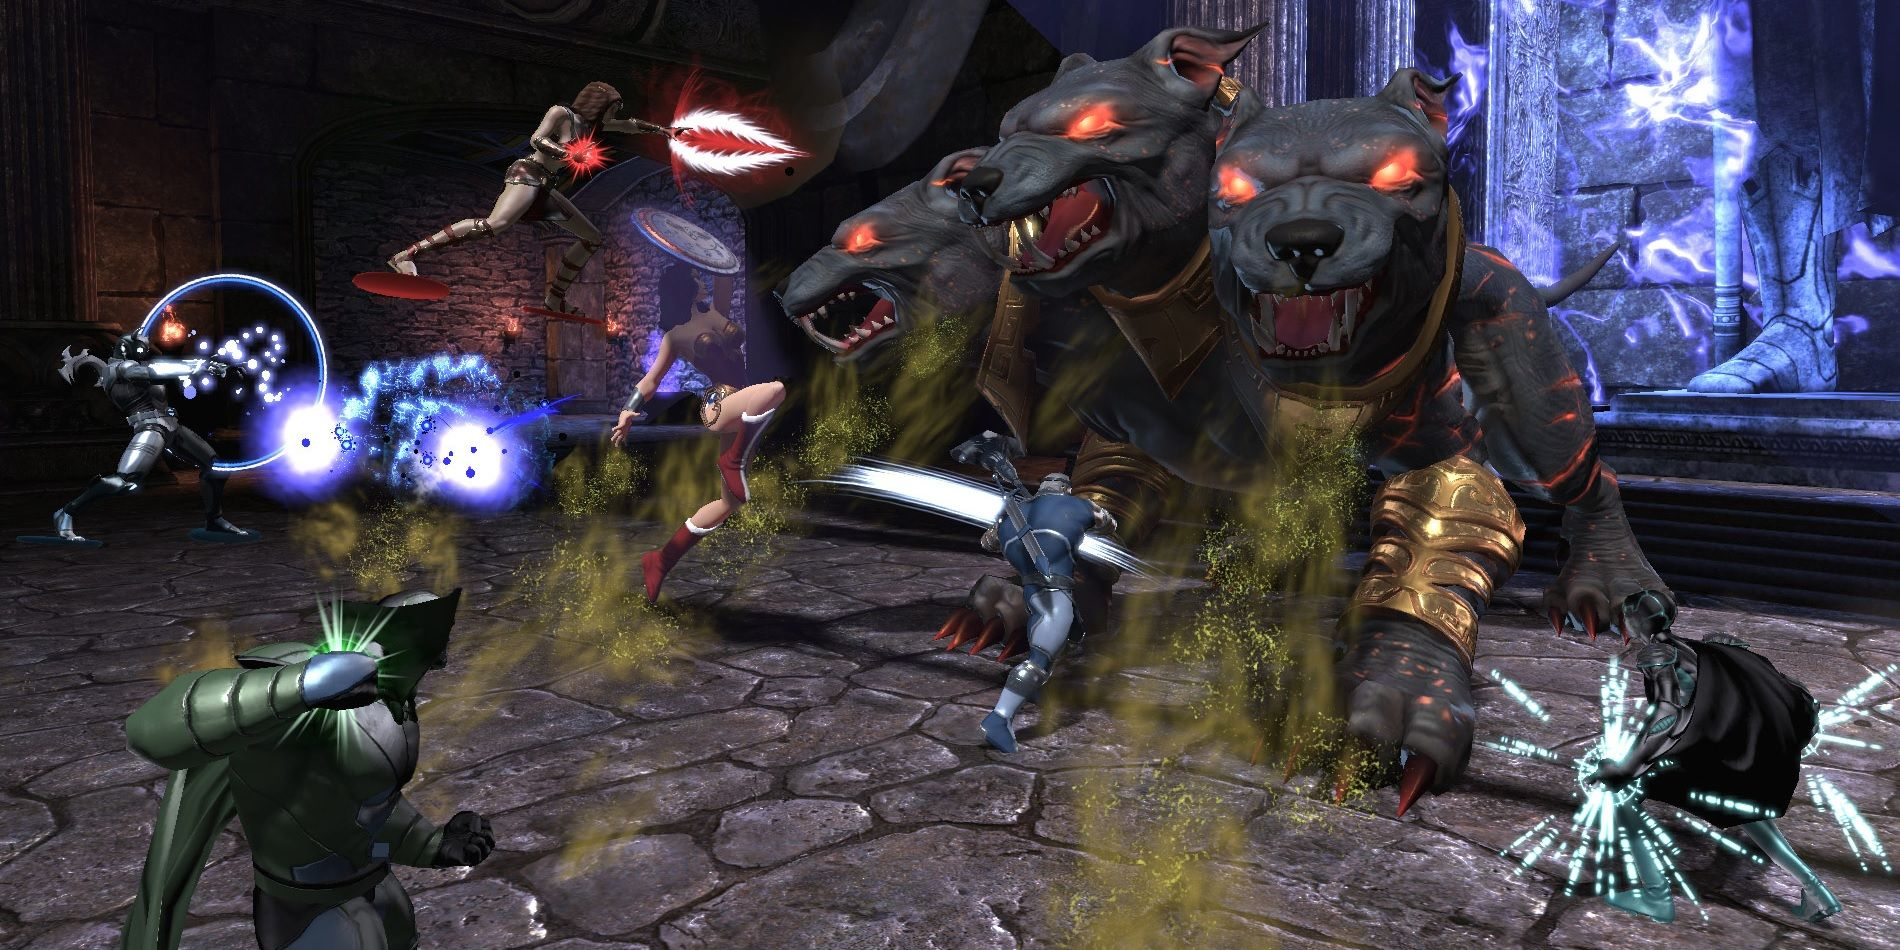 DC Universe Online Developer Reportedly Lays Off 70 Workers